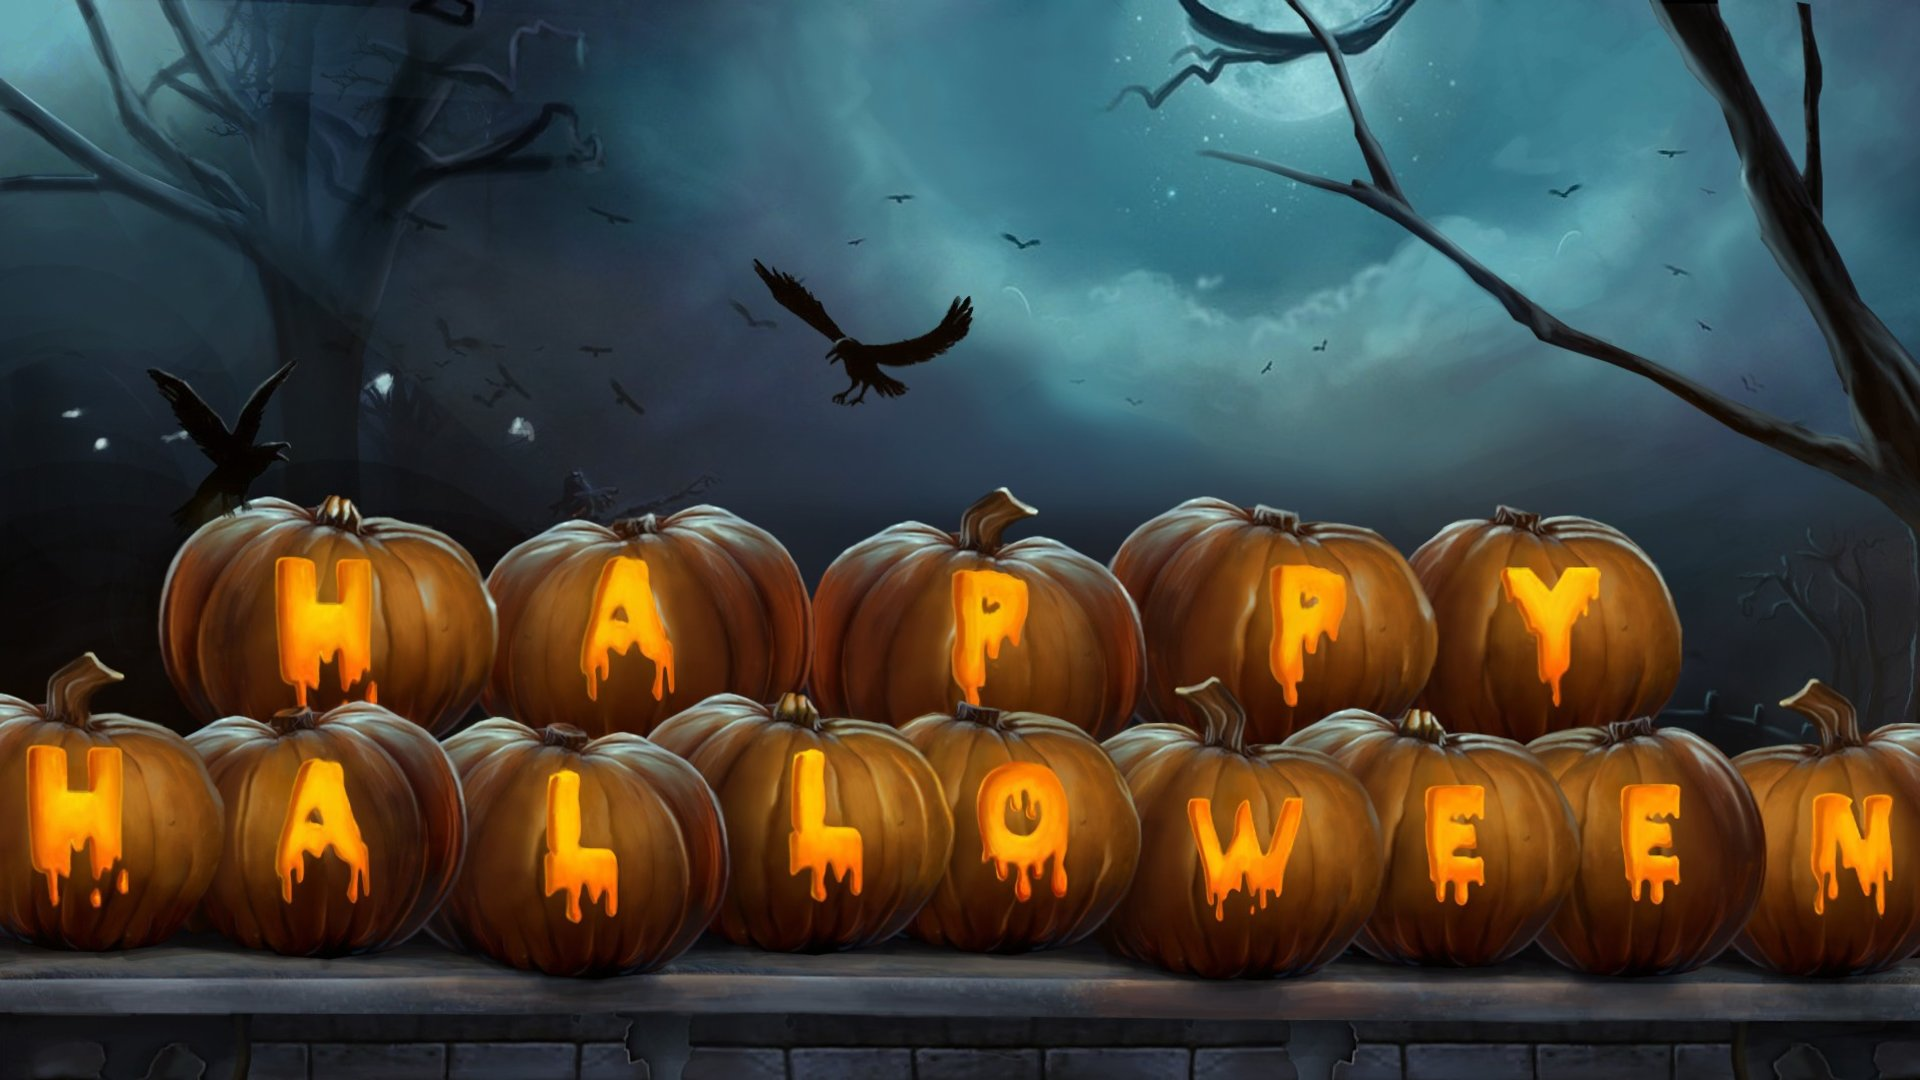 20 HD Wallpapers For Your Halloween Spirit